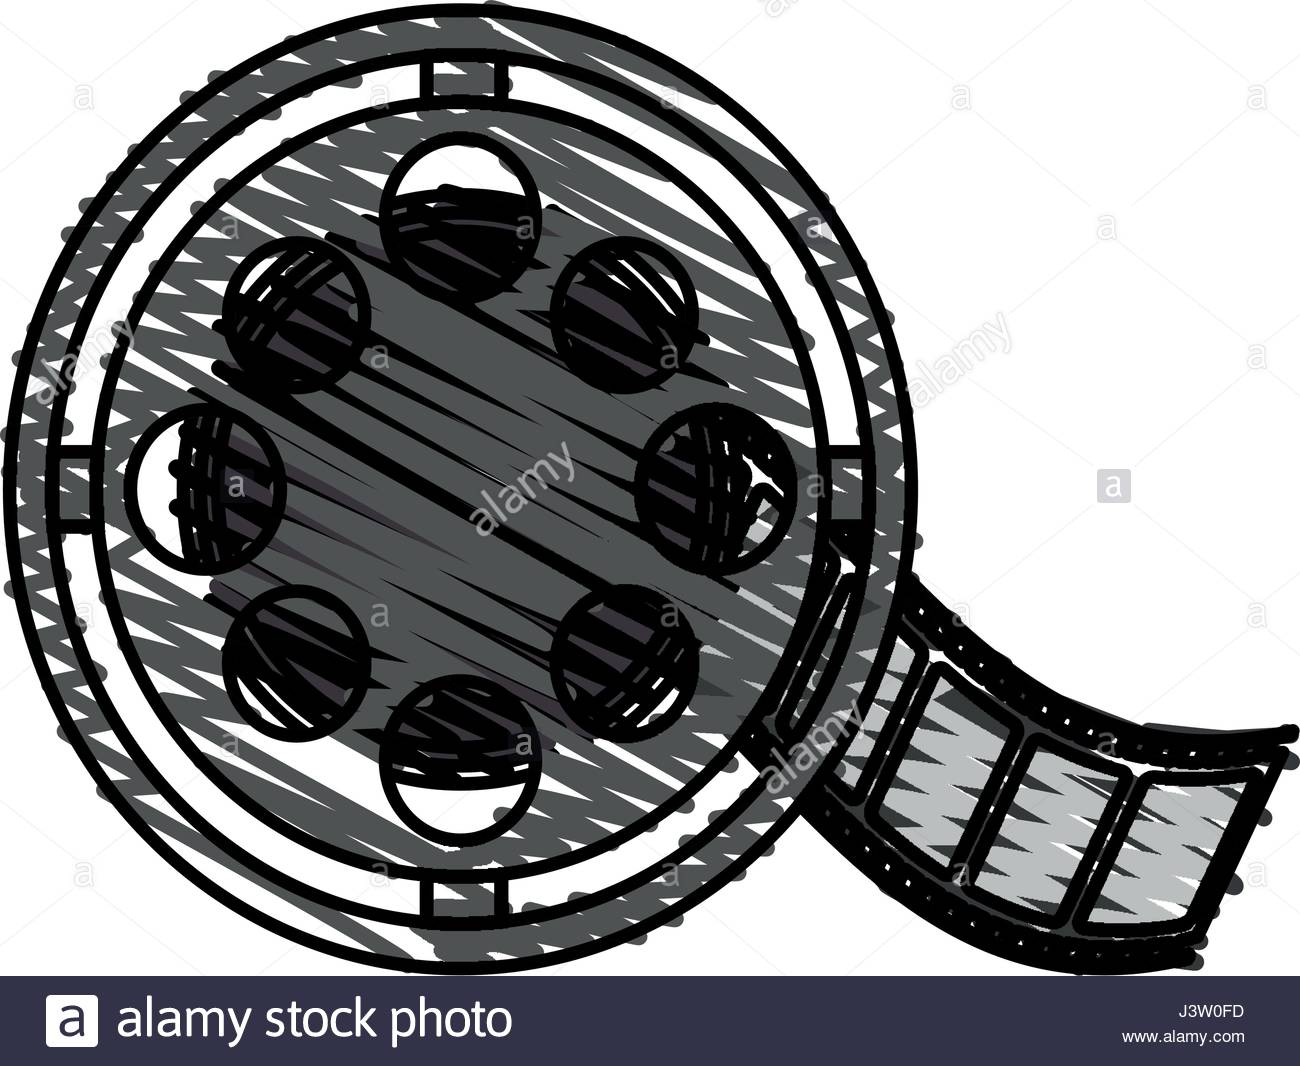 1300x1066 Color Crayon Stripe Image Cartoon Film Roll Reel Stock Vector Art